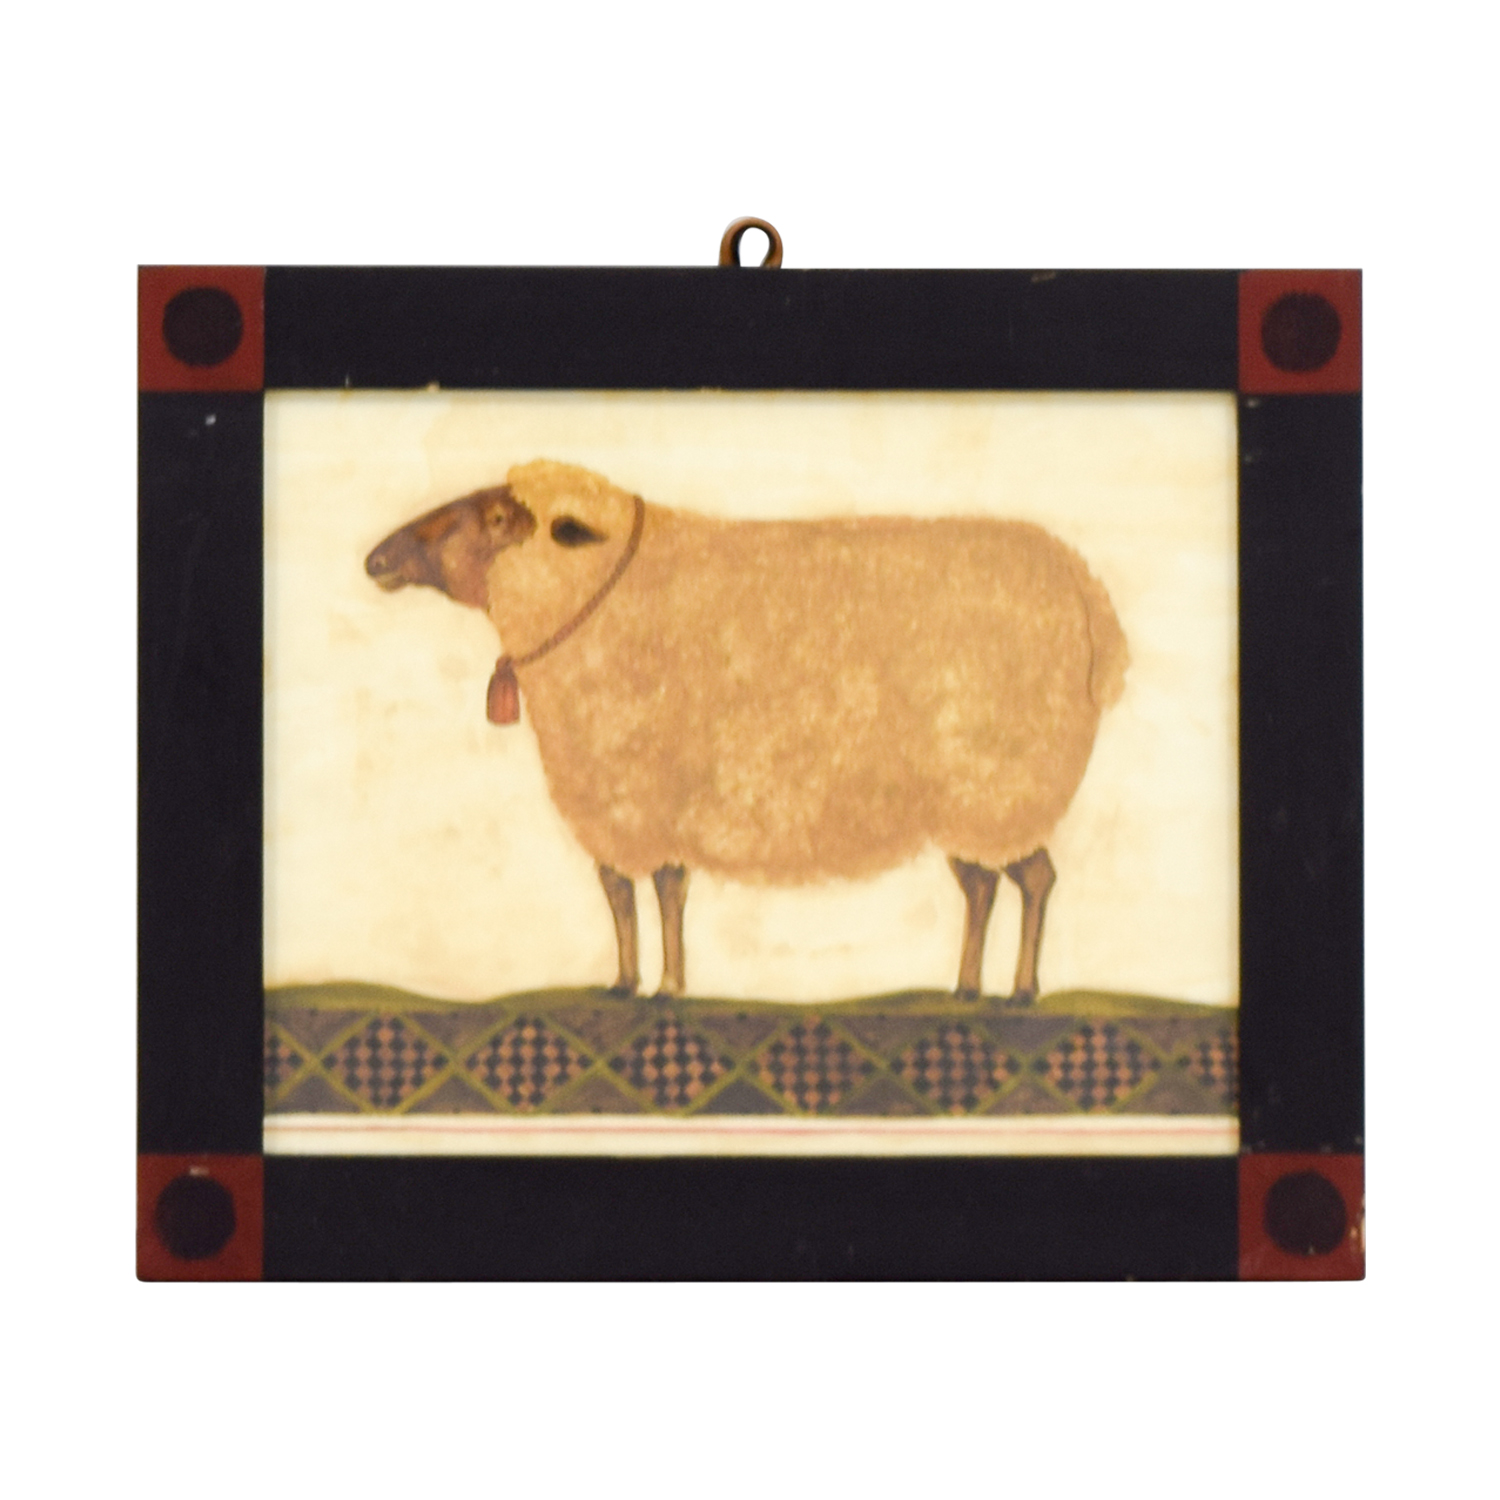 Rustic Sheep Framed Artwork for sale